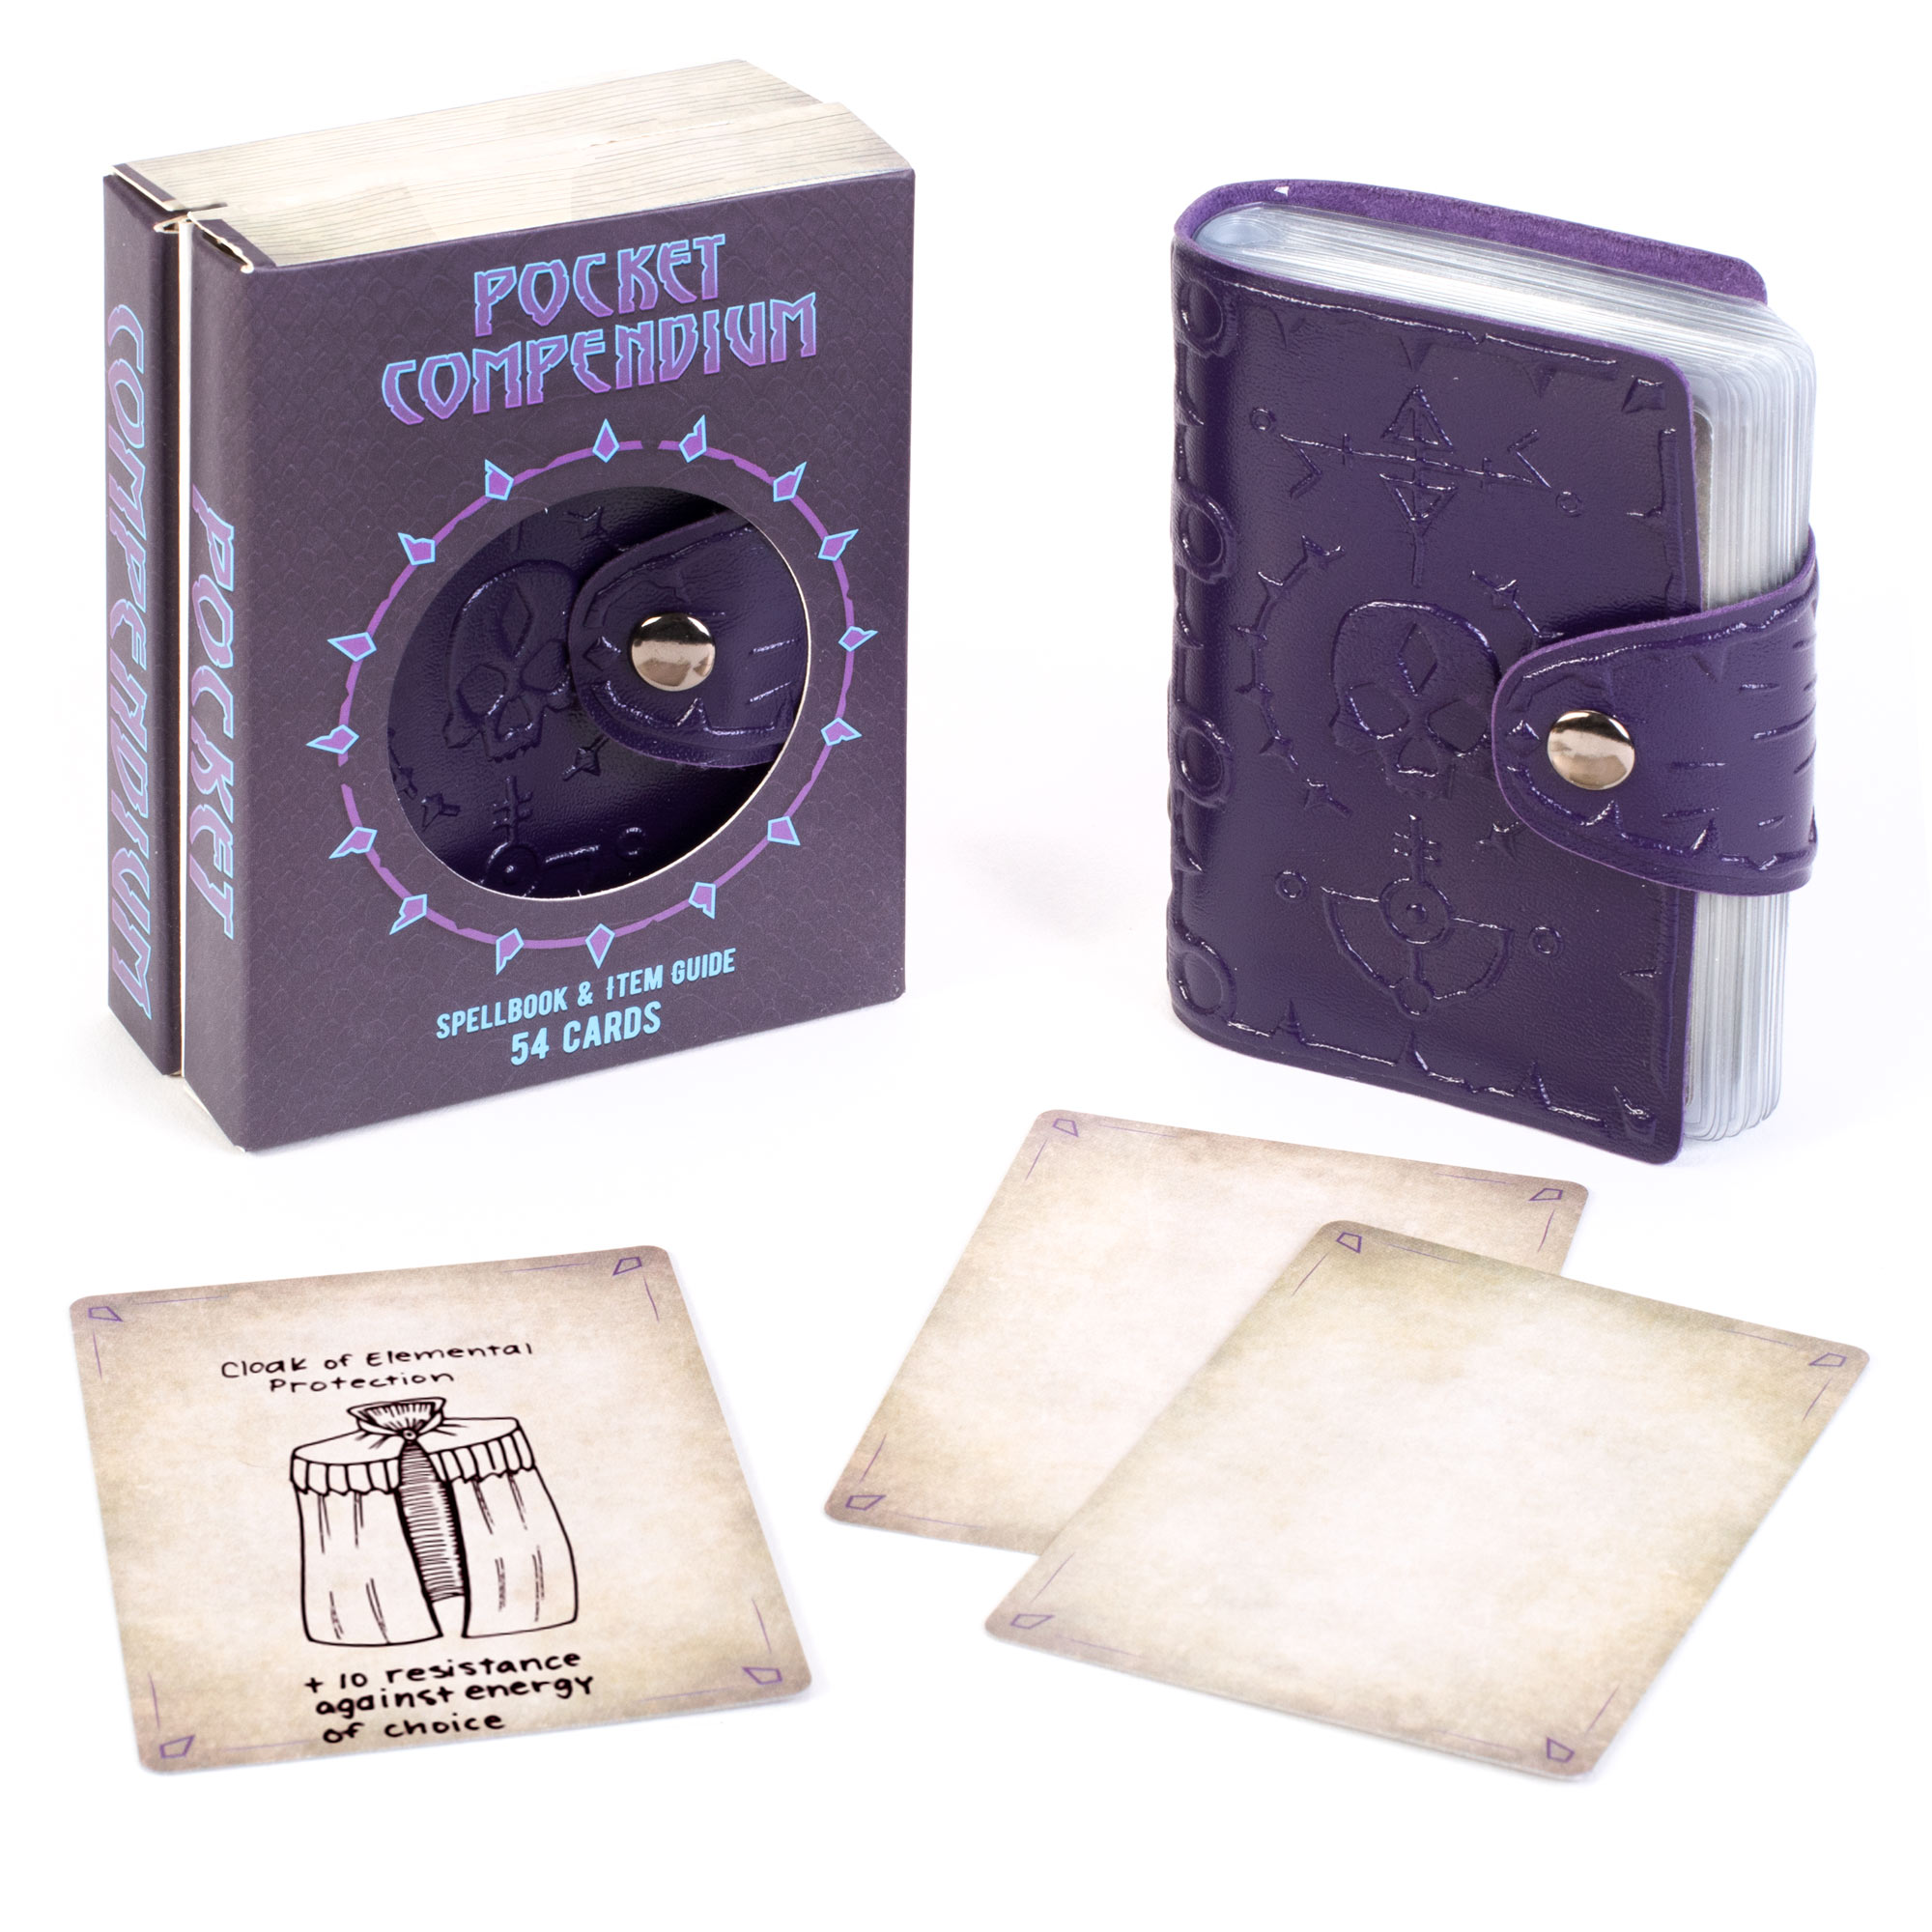 Pocket Compendium: Tome of Dread